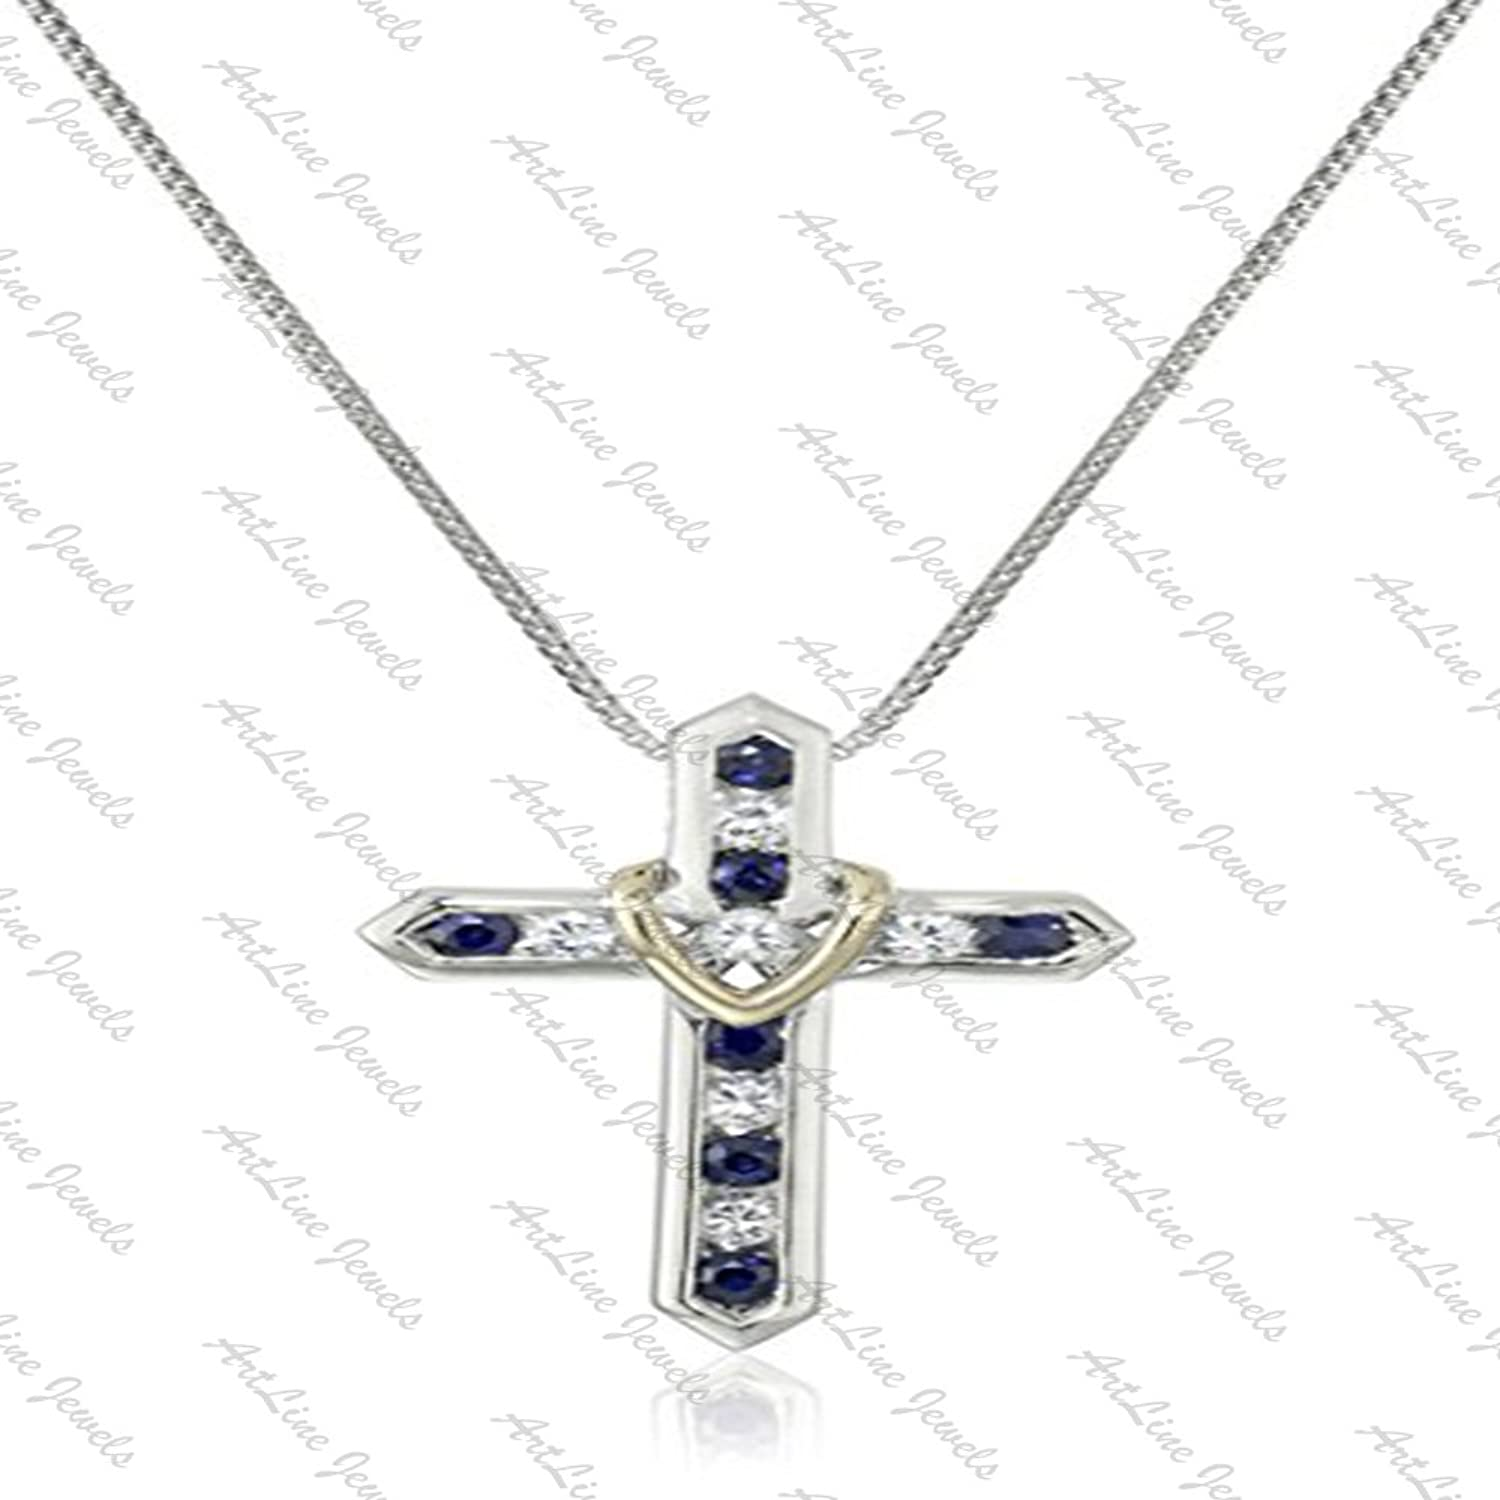 "ArtLine Jewels Religious Holy Cross Pendant Collection:-White Gold Plated Alloy Round Cut Simulated Blue & White Diamond Classic Holy Cross Pendant With Chain 18"" Unisex"